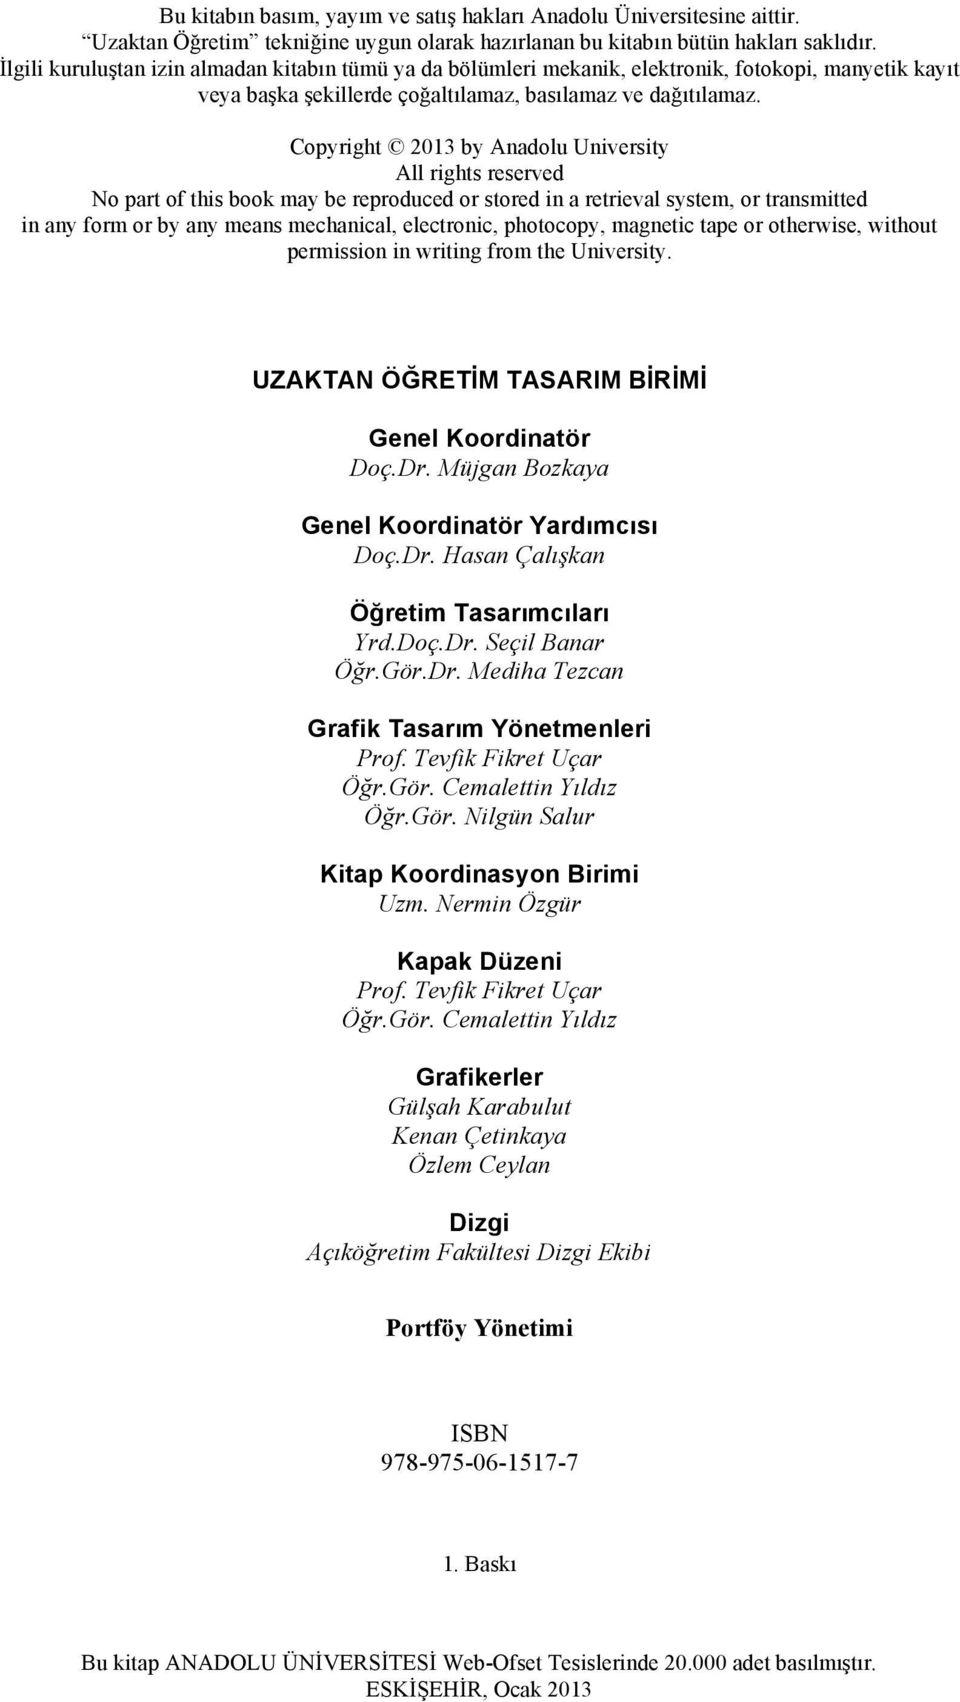 Copyright 2013 by Anadolu University All rights reserved No part of this book may be reproduced or stored in a retrieval system, or transmitted in any form or by any means mechanical, electronic,